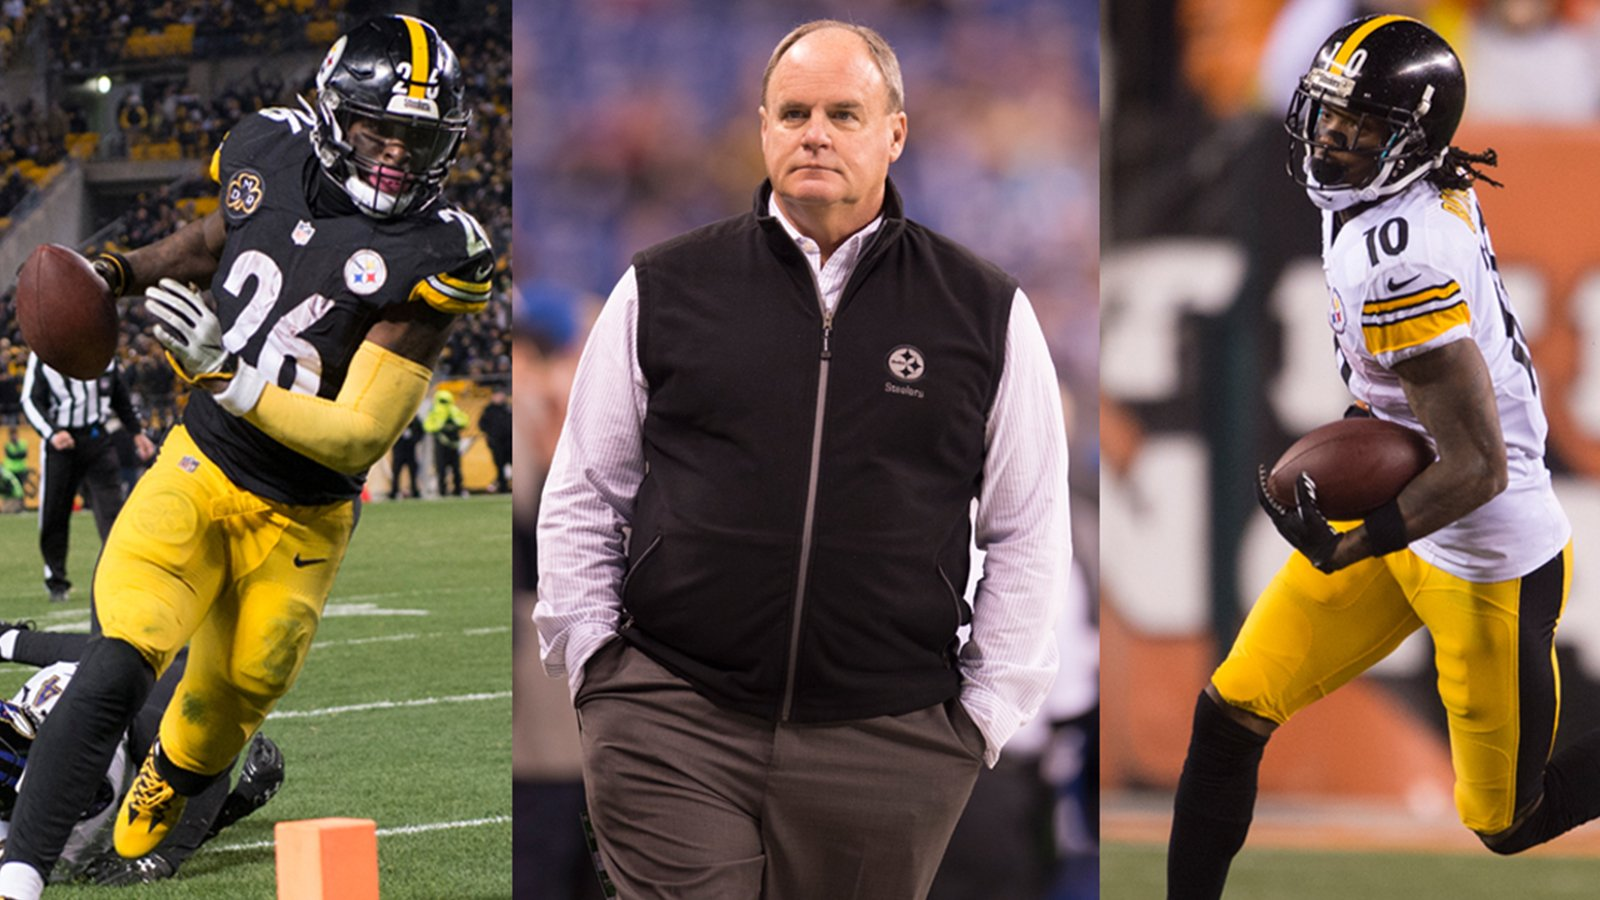 Bob and Missi caught up with GM Kevin Colbert at the #NFLCombine about Le'Veon Bell, Martavis Bryant and more. https://t.co/Z9ueMwUD76